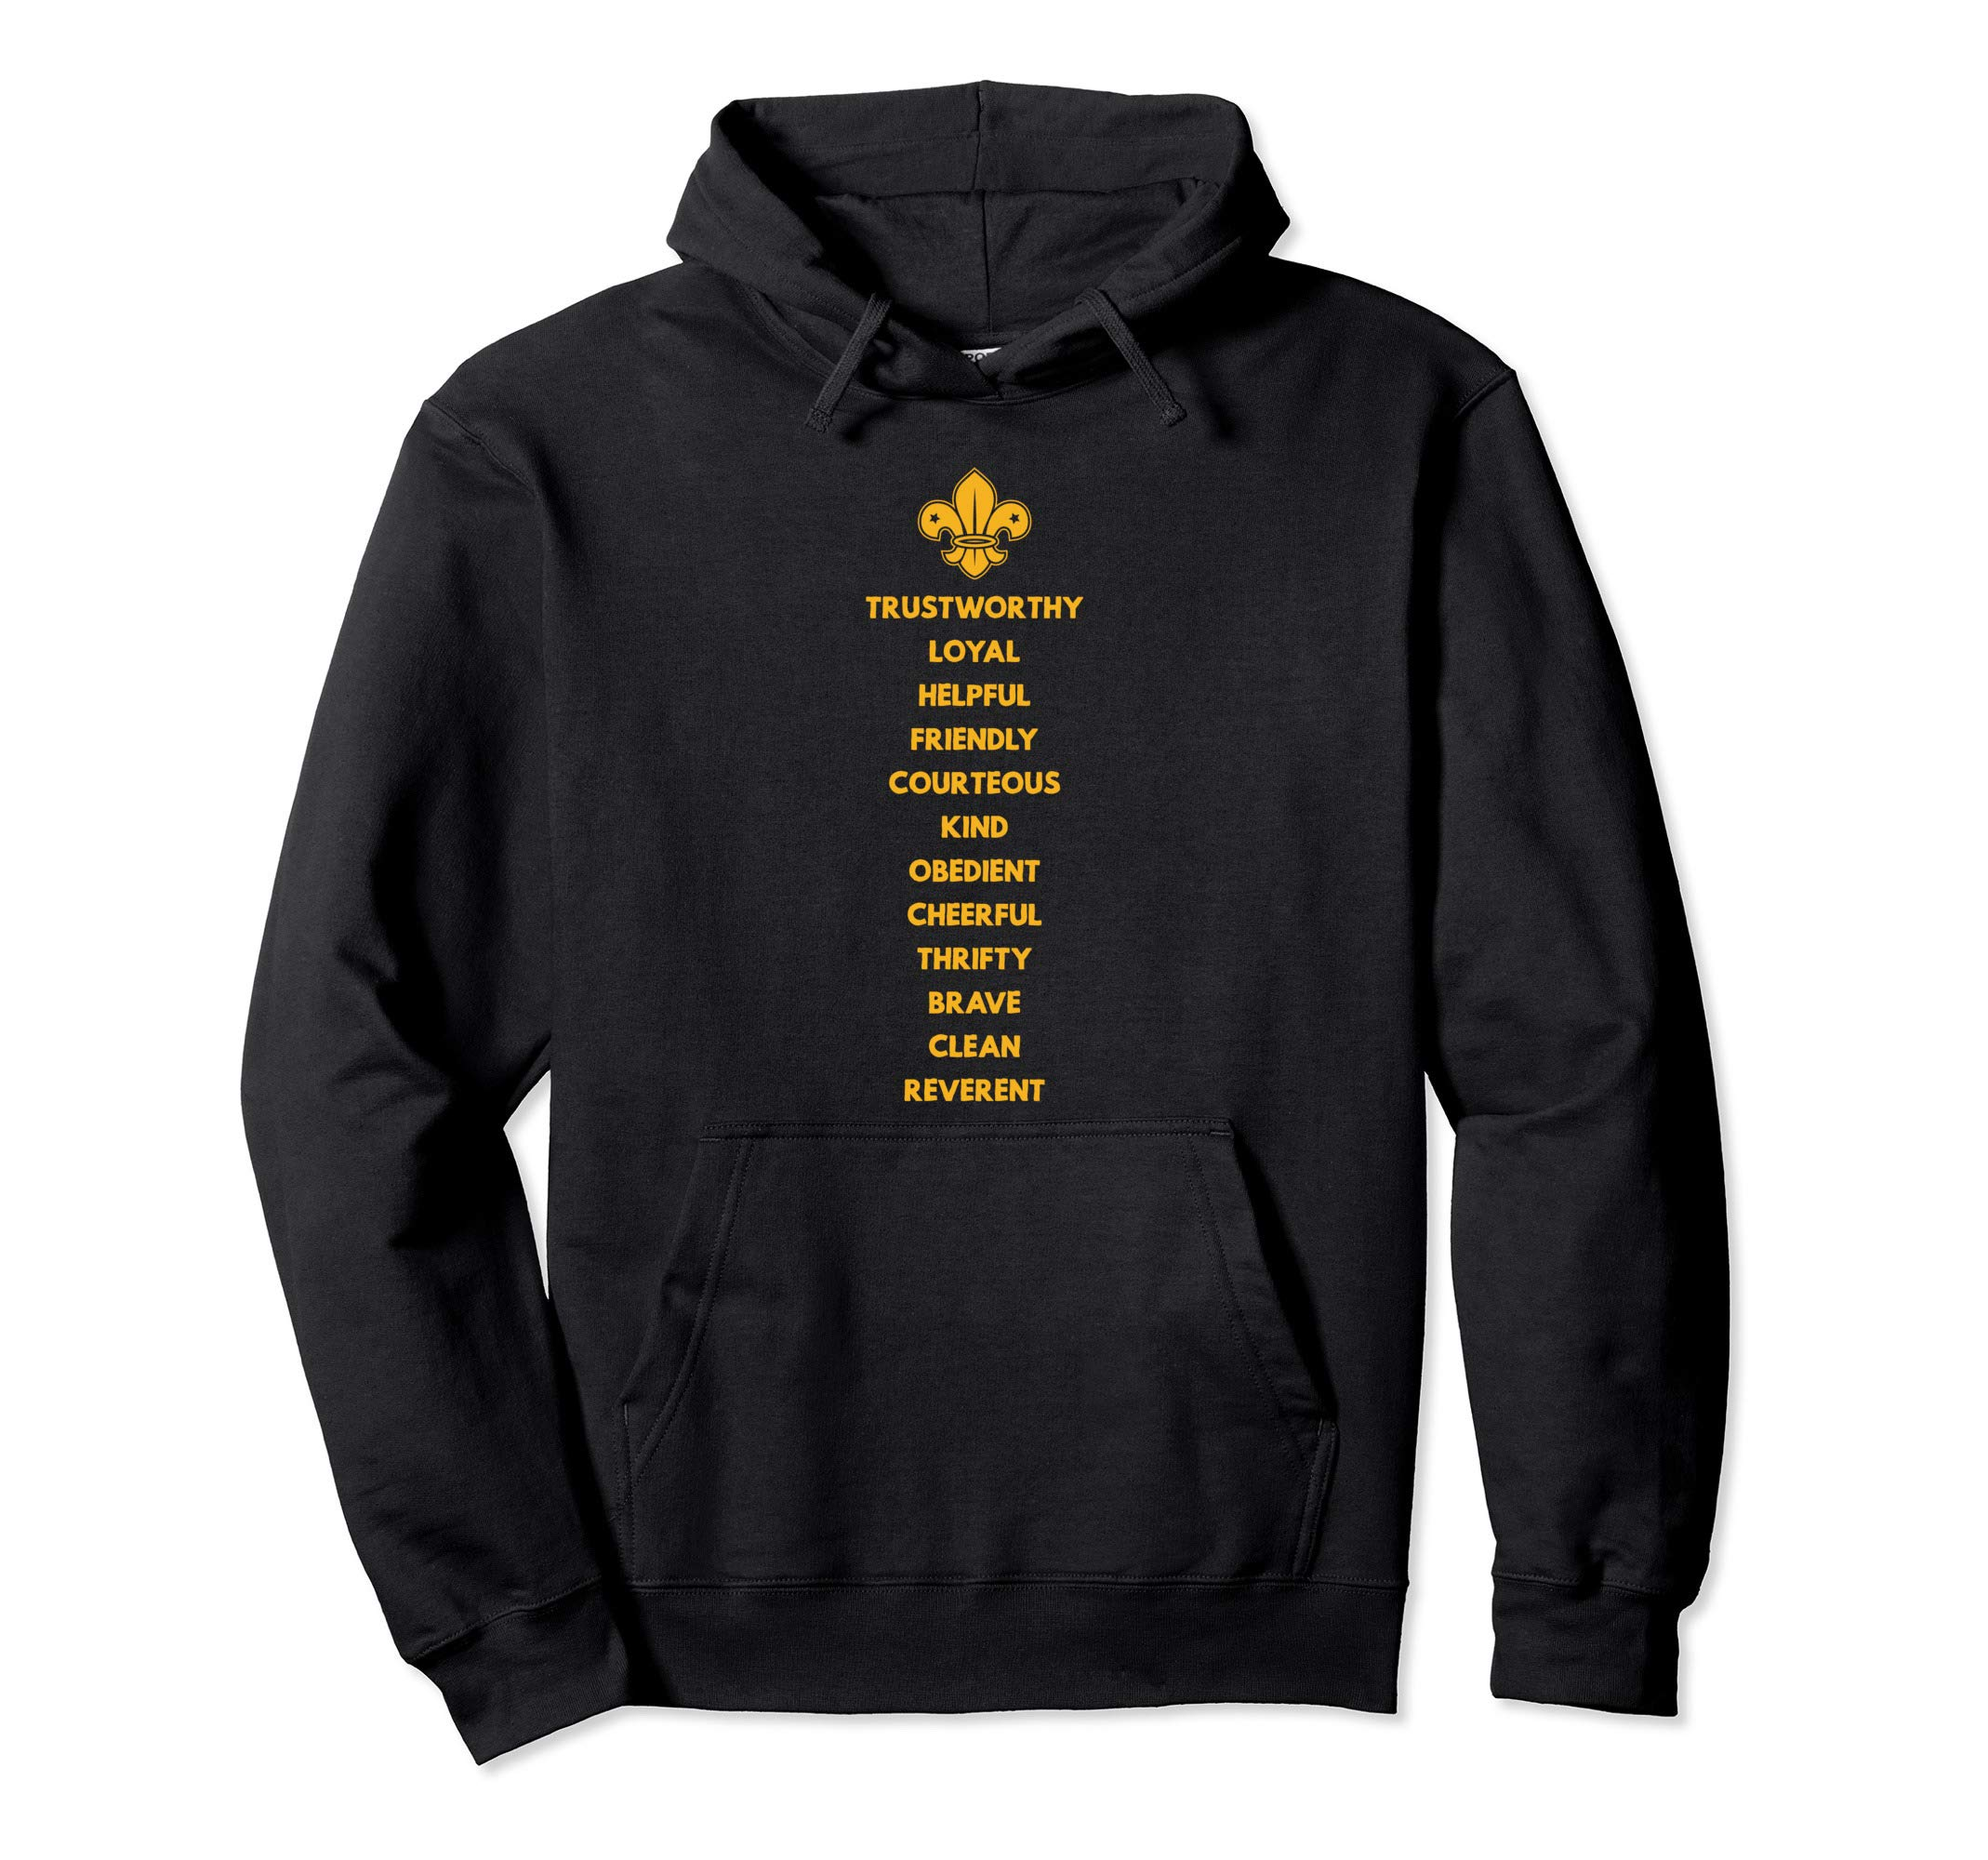 scout law scout scouting member supporter hoodie by Scout Shirts For Scouting Members & Supporters